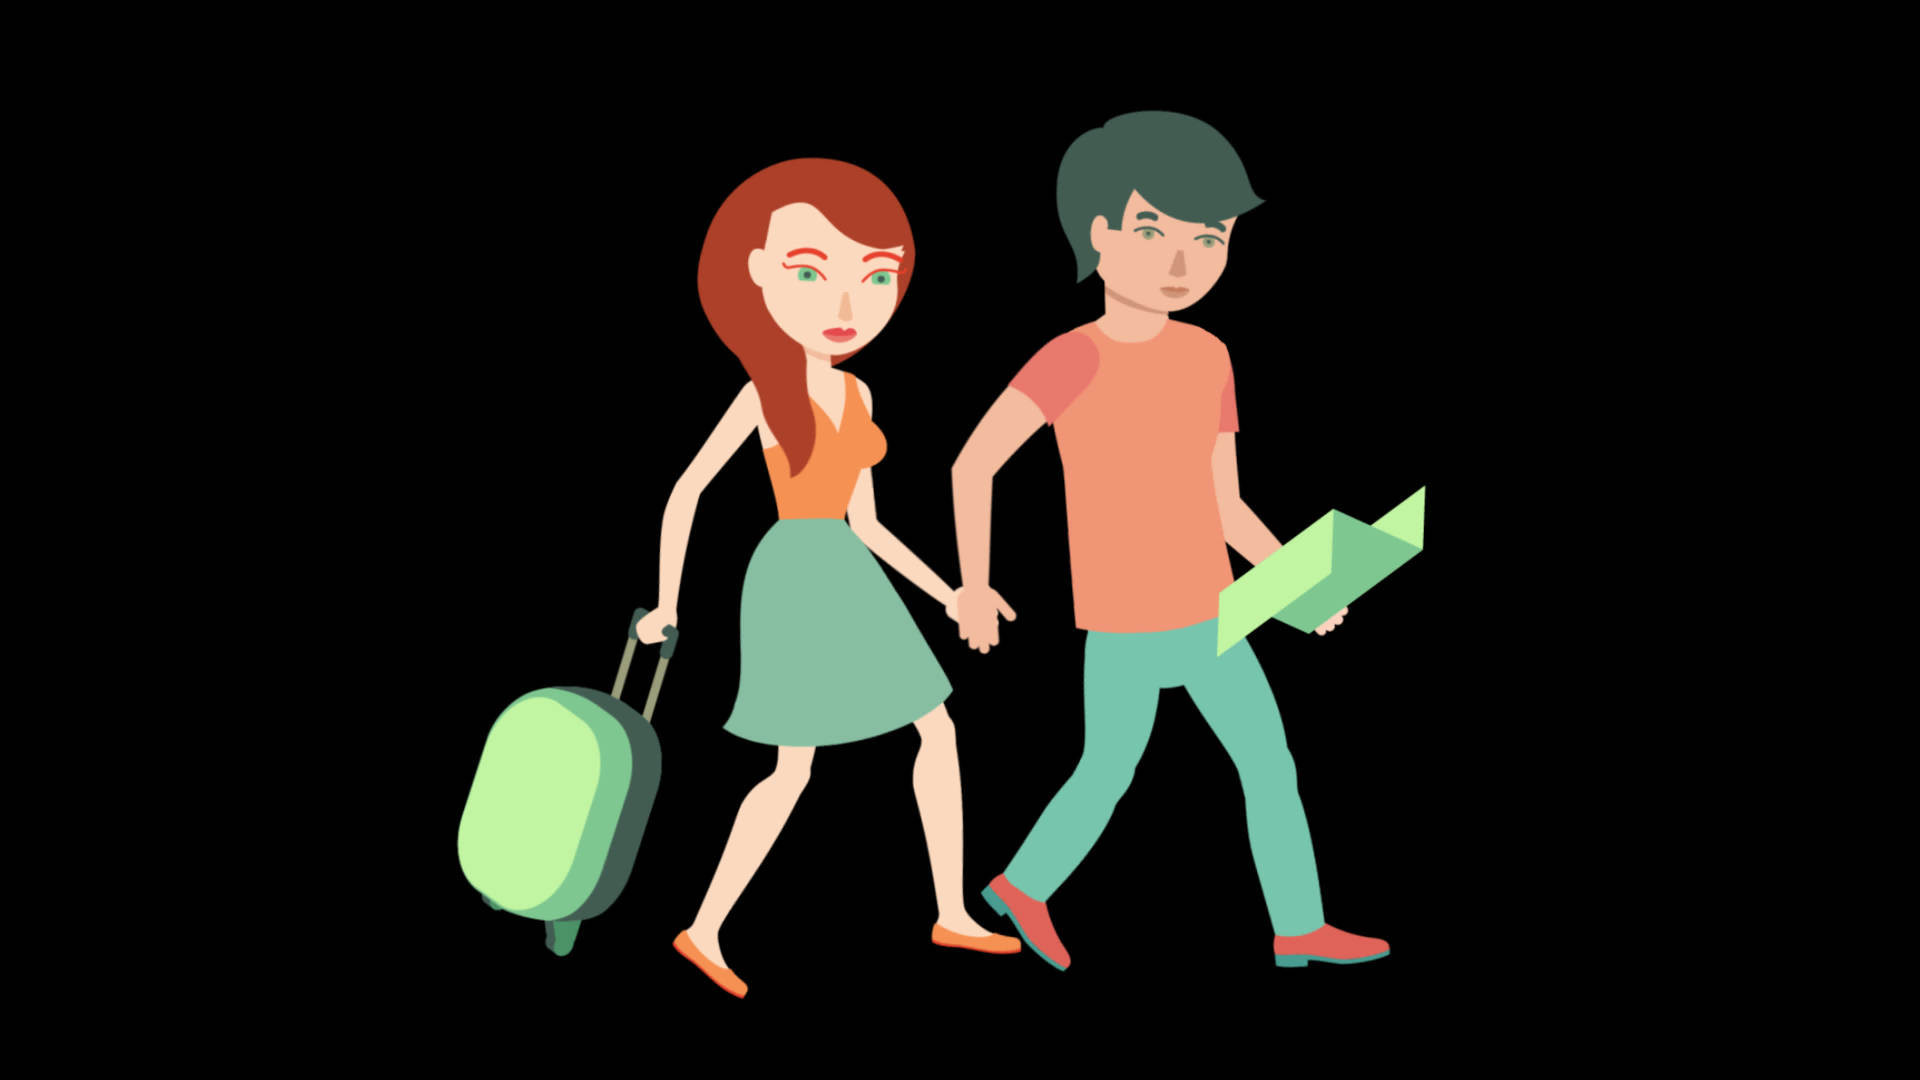 Animated Characters Couple Walking Alpha Transparent - Free